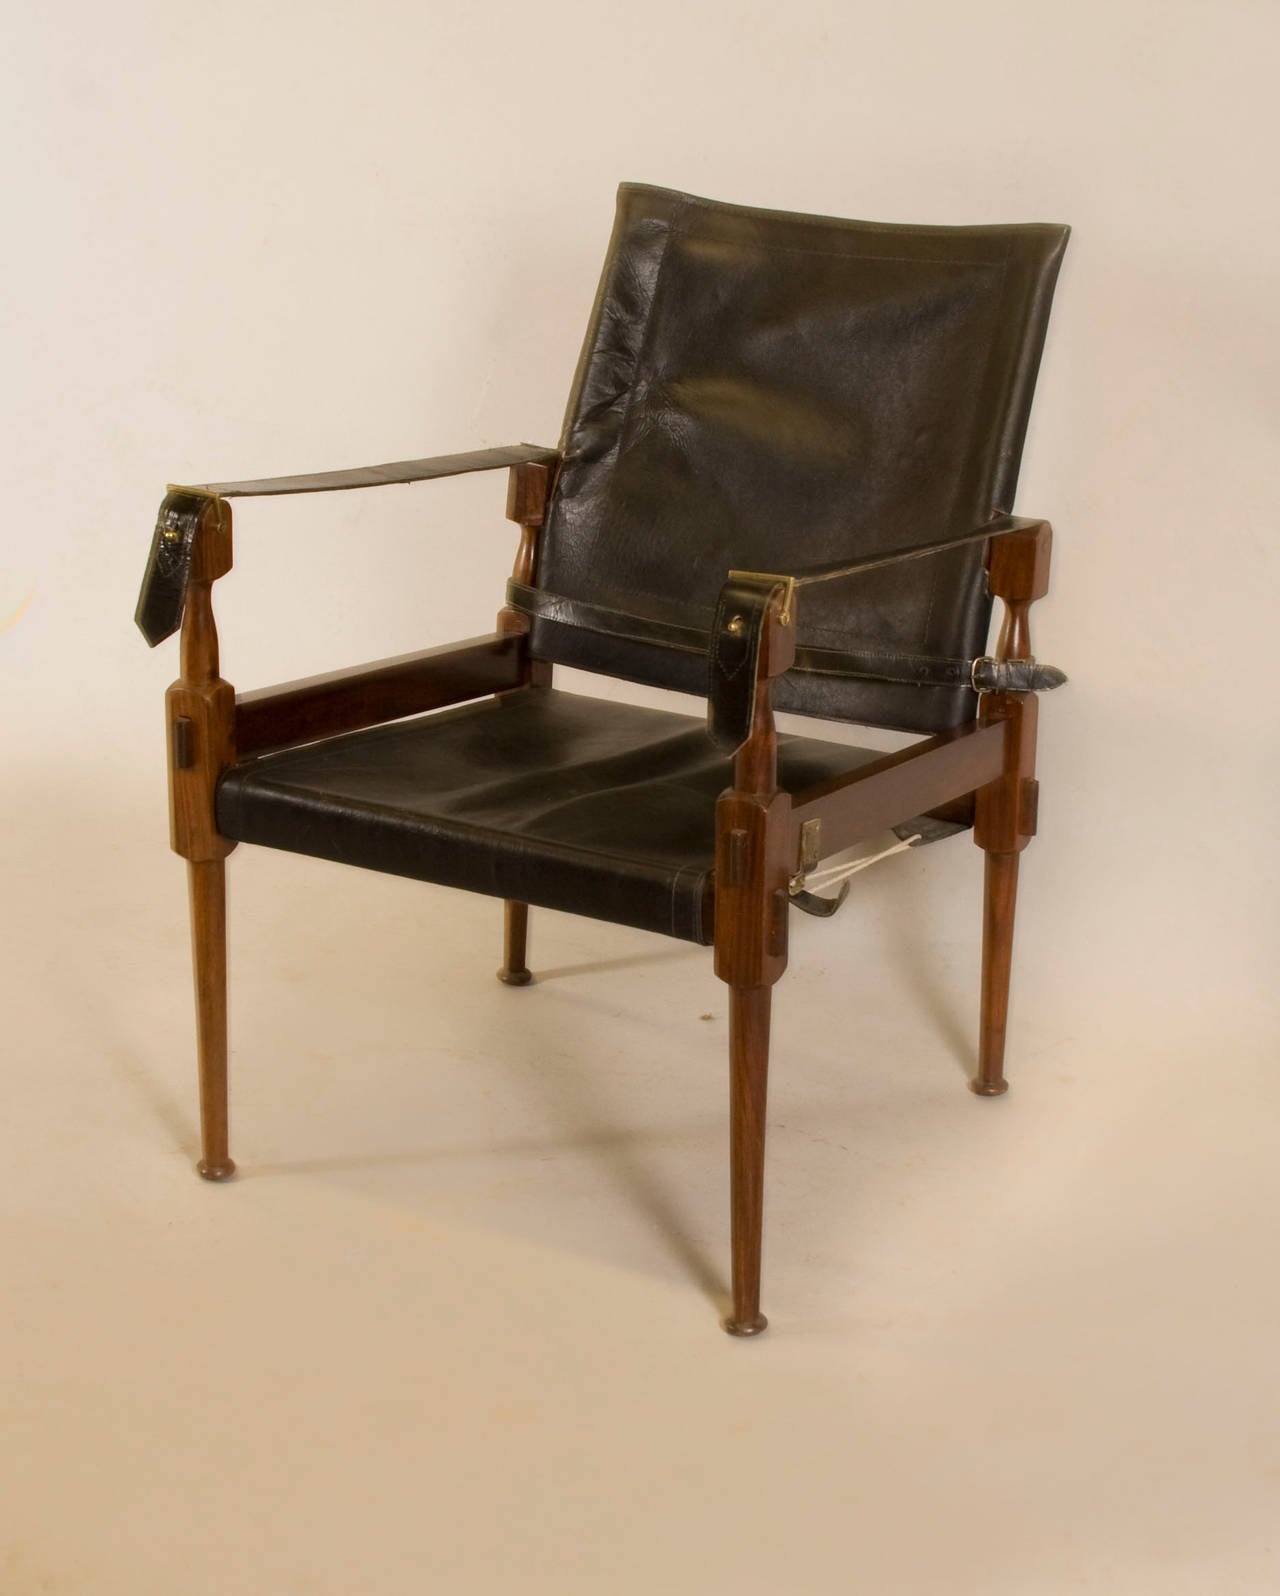 leather safari chair stool autocad rosewood in the style of carl auböck for sale